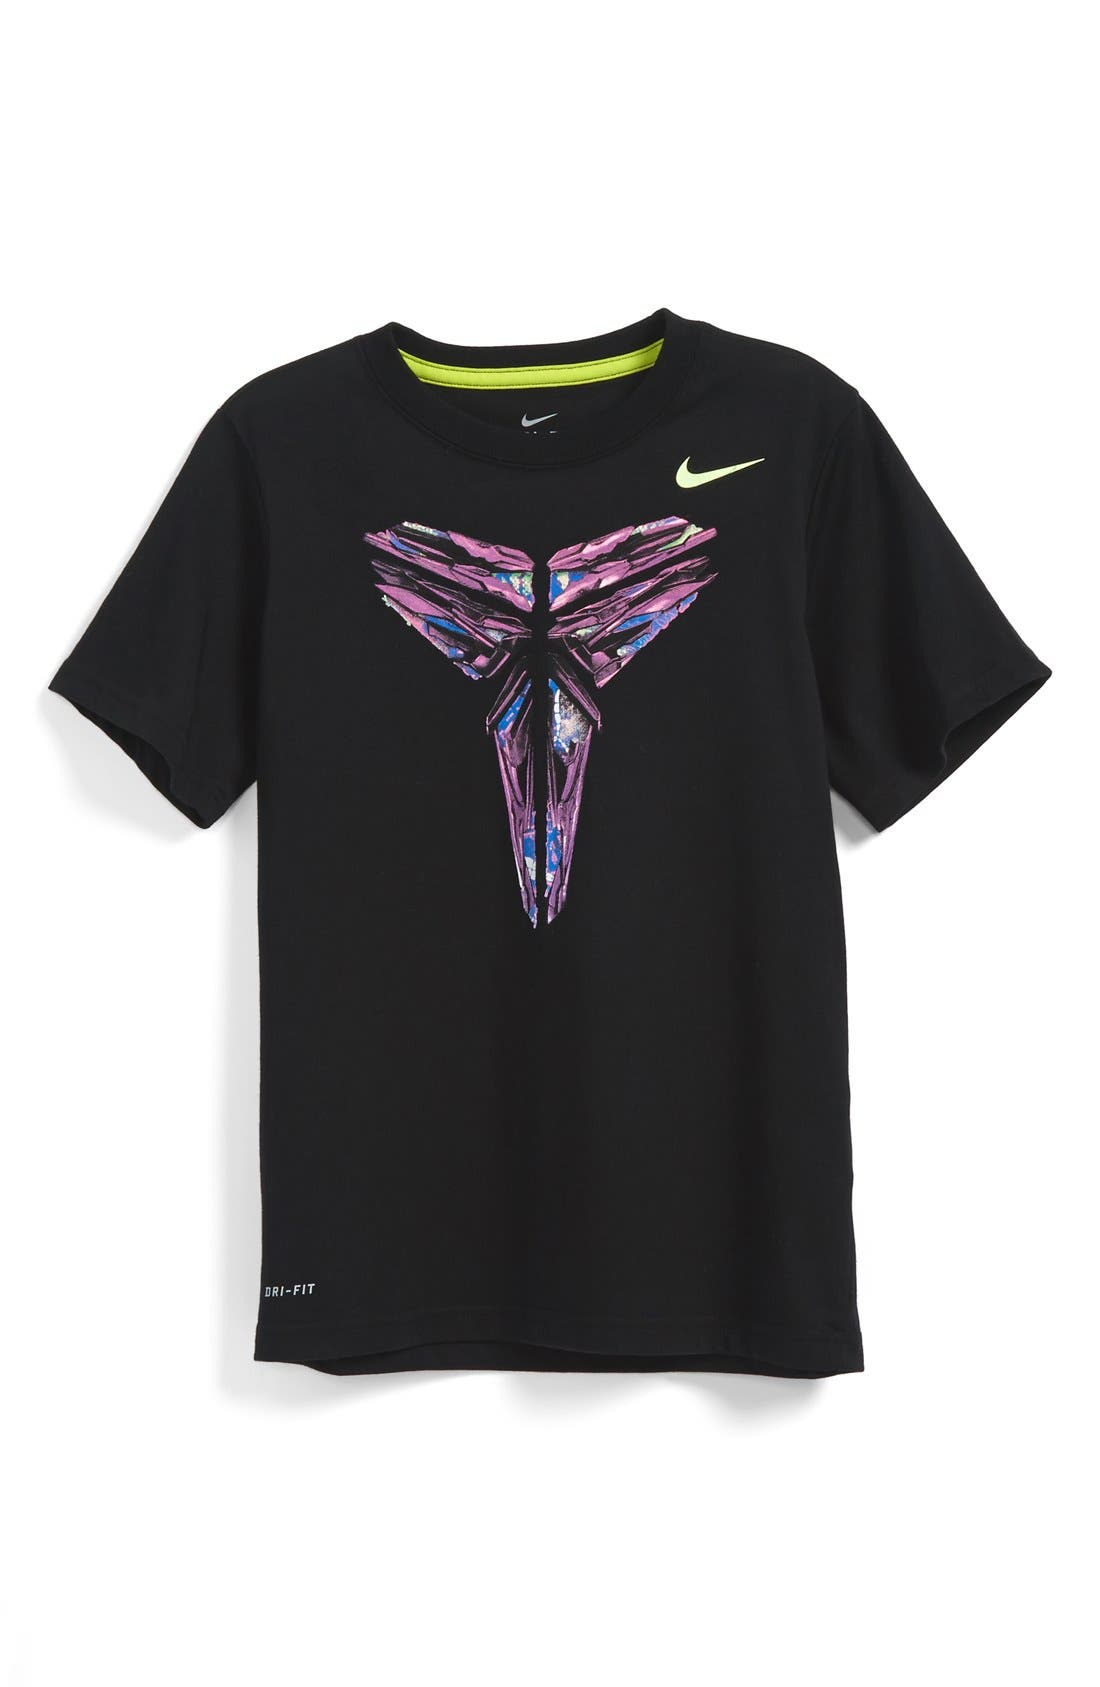 NIKE,                             'Kobe Sheath' Graphic T-Shirt,                             Main thumbnail 1, color,                             010